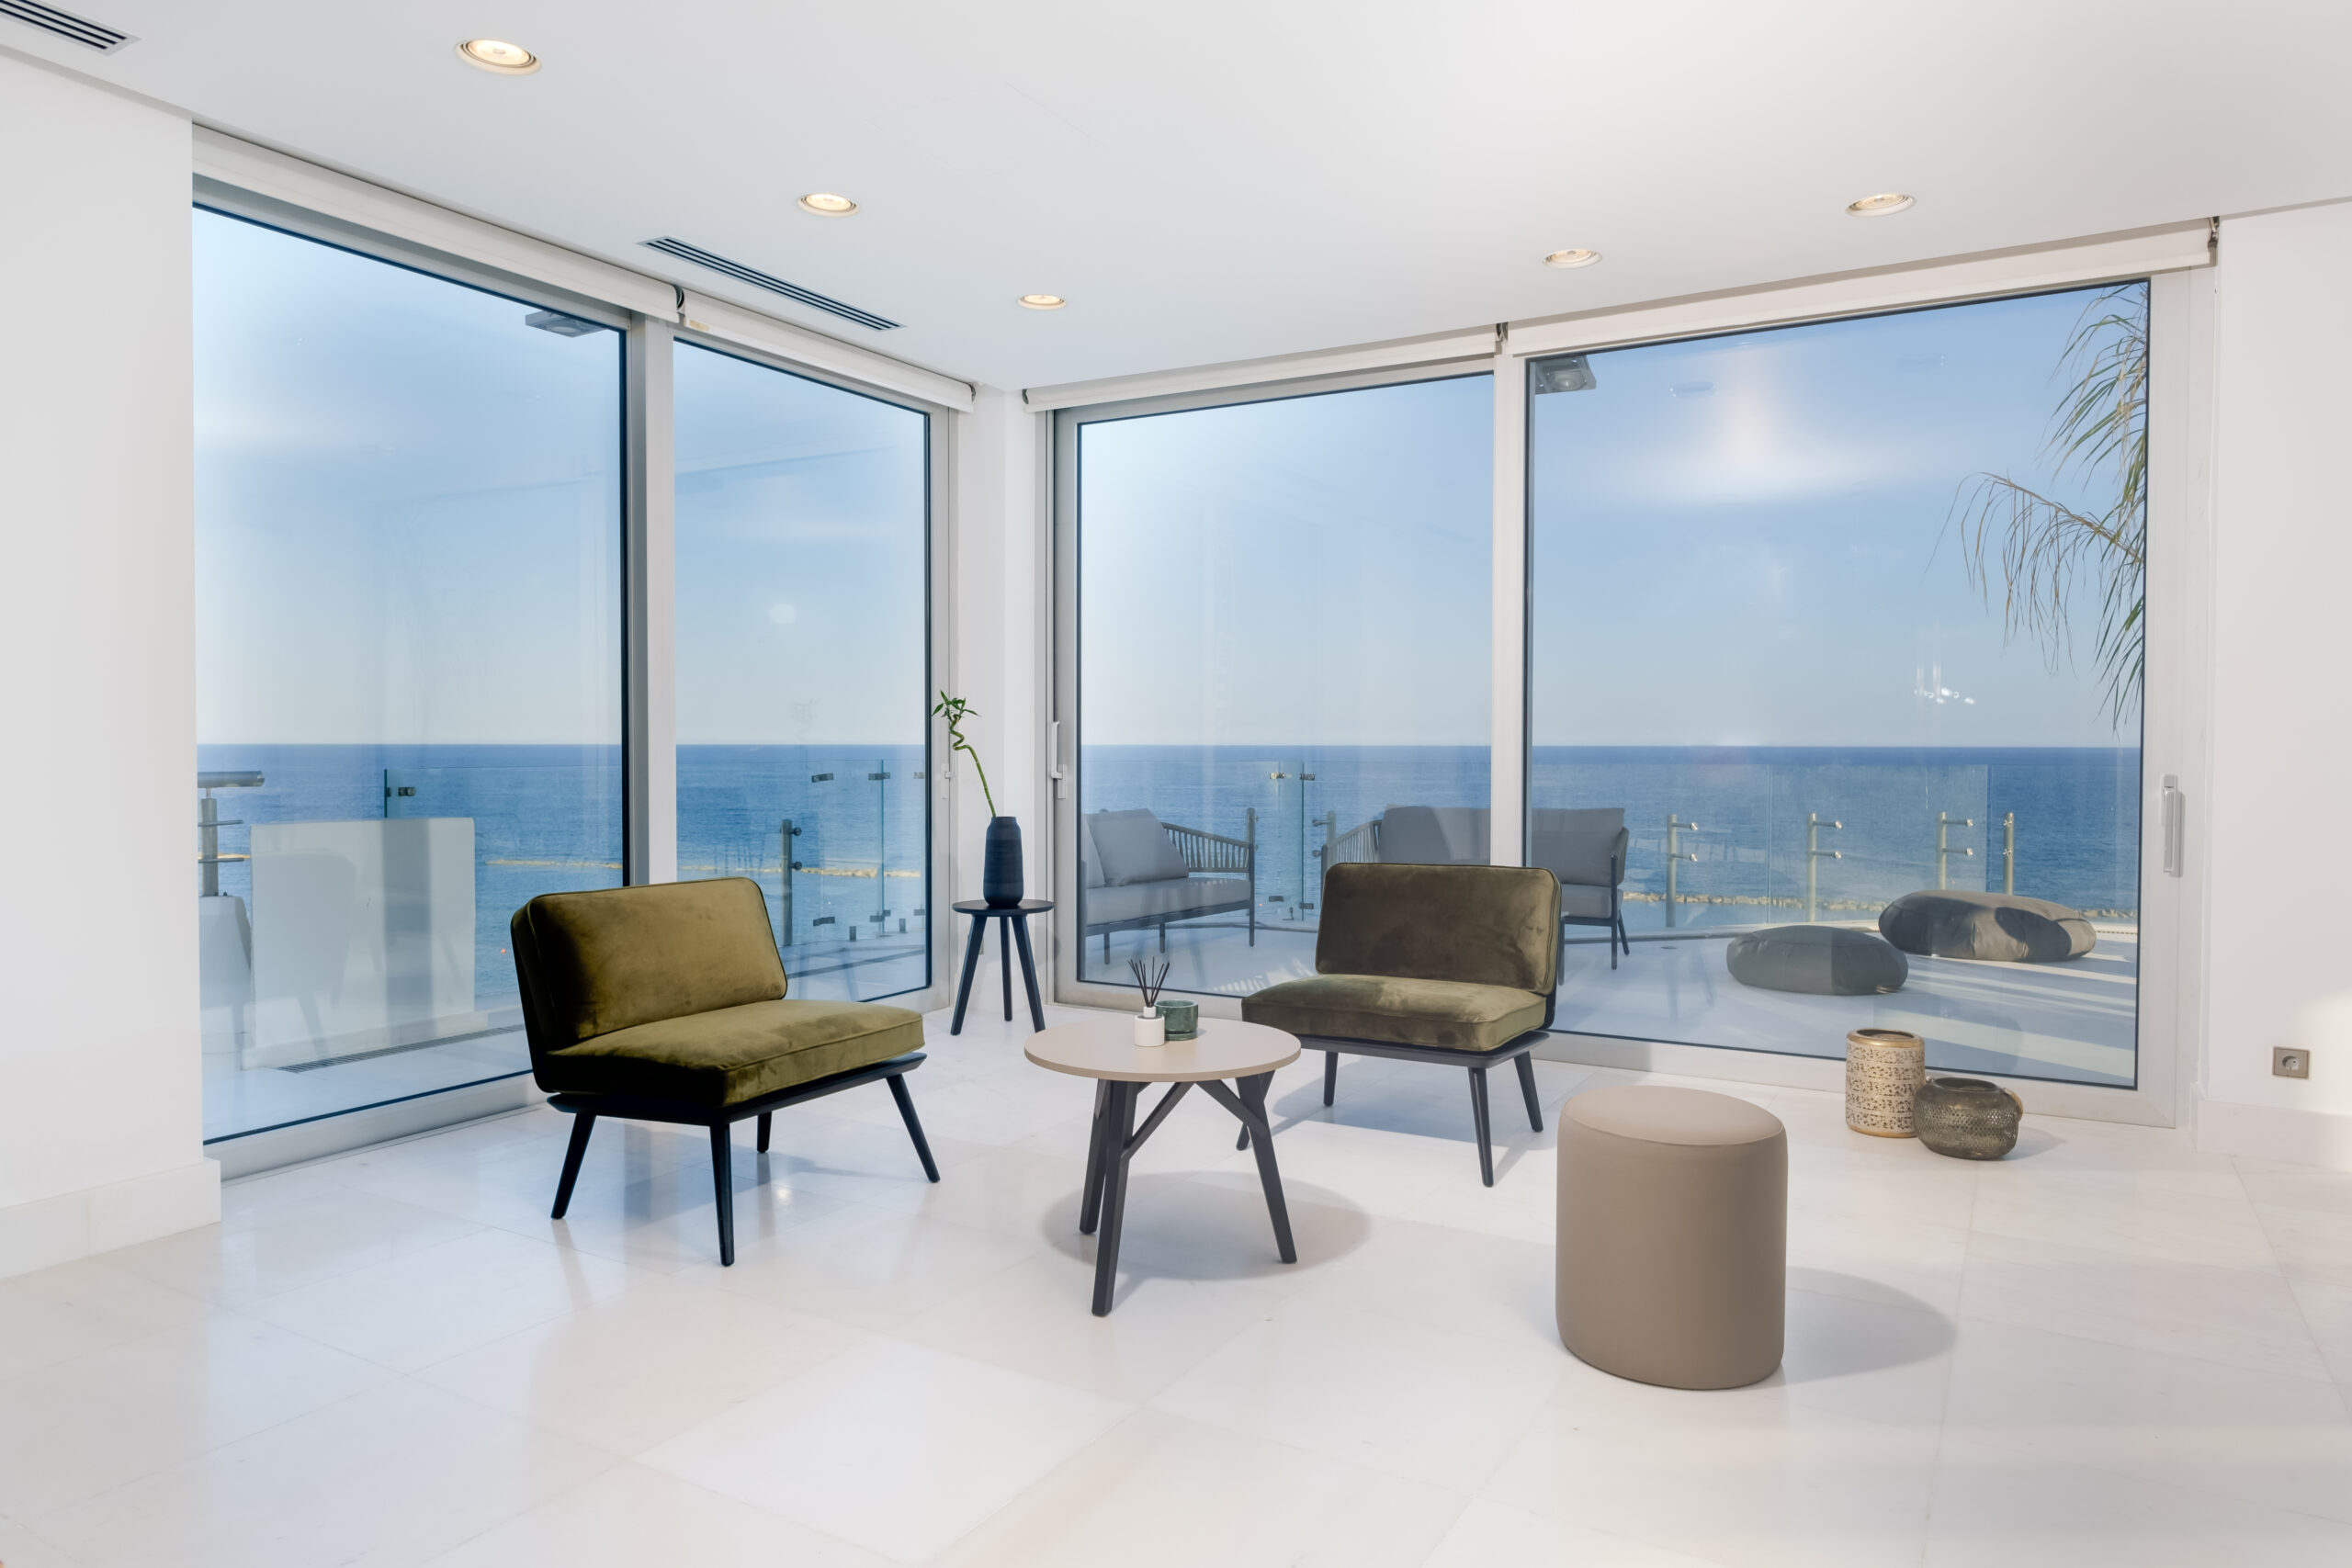 Amazing 4 bedroom modern penthouse direct on the beach